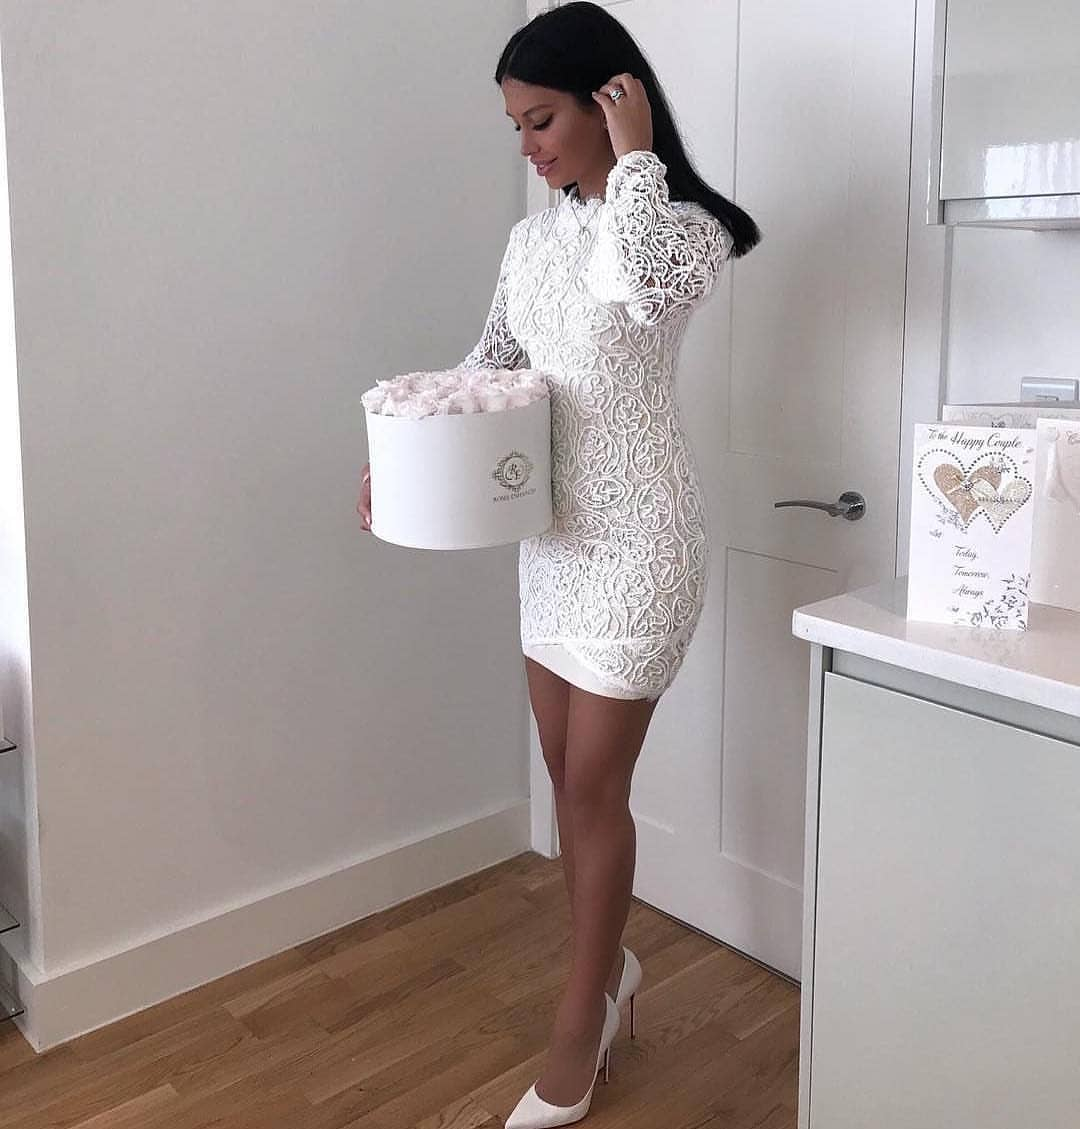 All White Look For Summer: White Lace Dress And White Pumps 2020